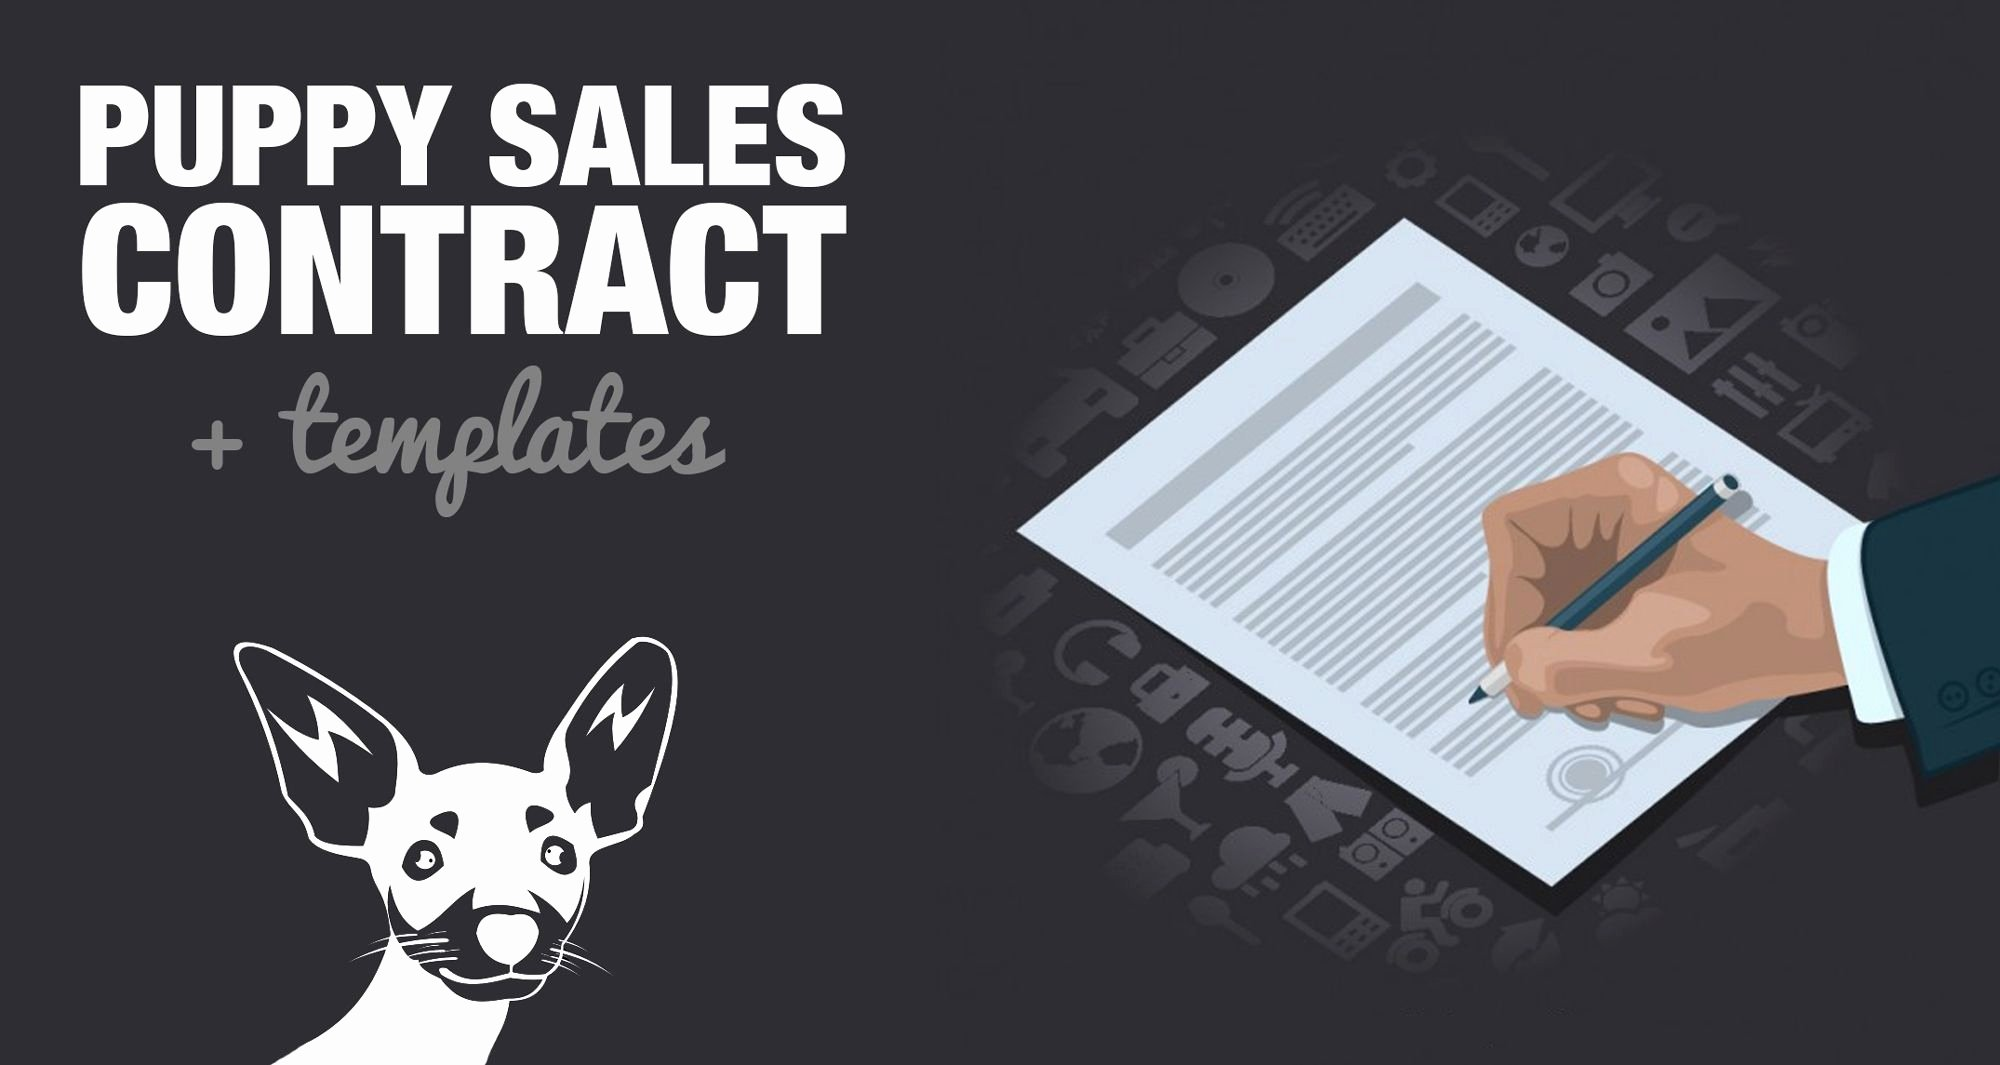 Puppy Sale Contract Template Elegant Free Puppy Sales Contract Template & Word Doc Sample